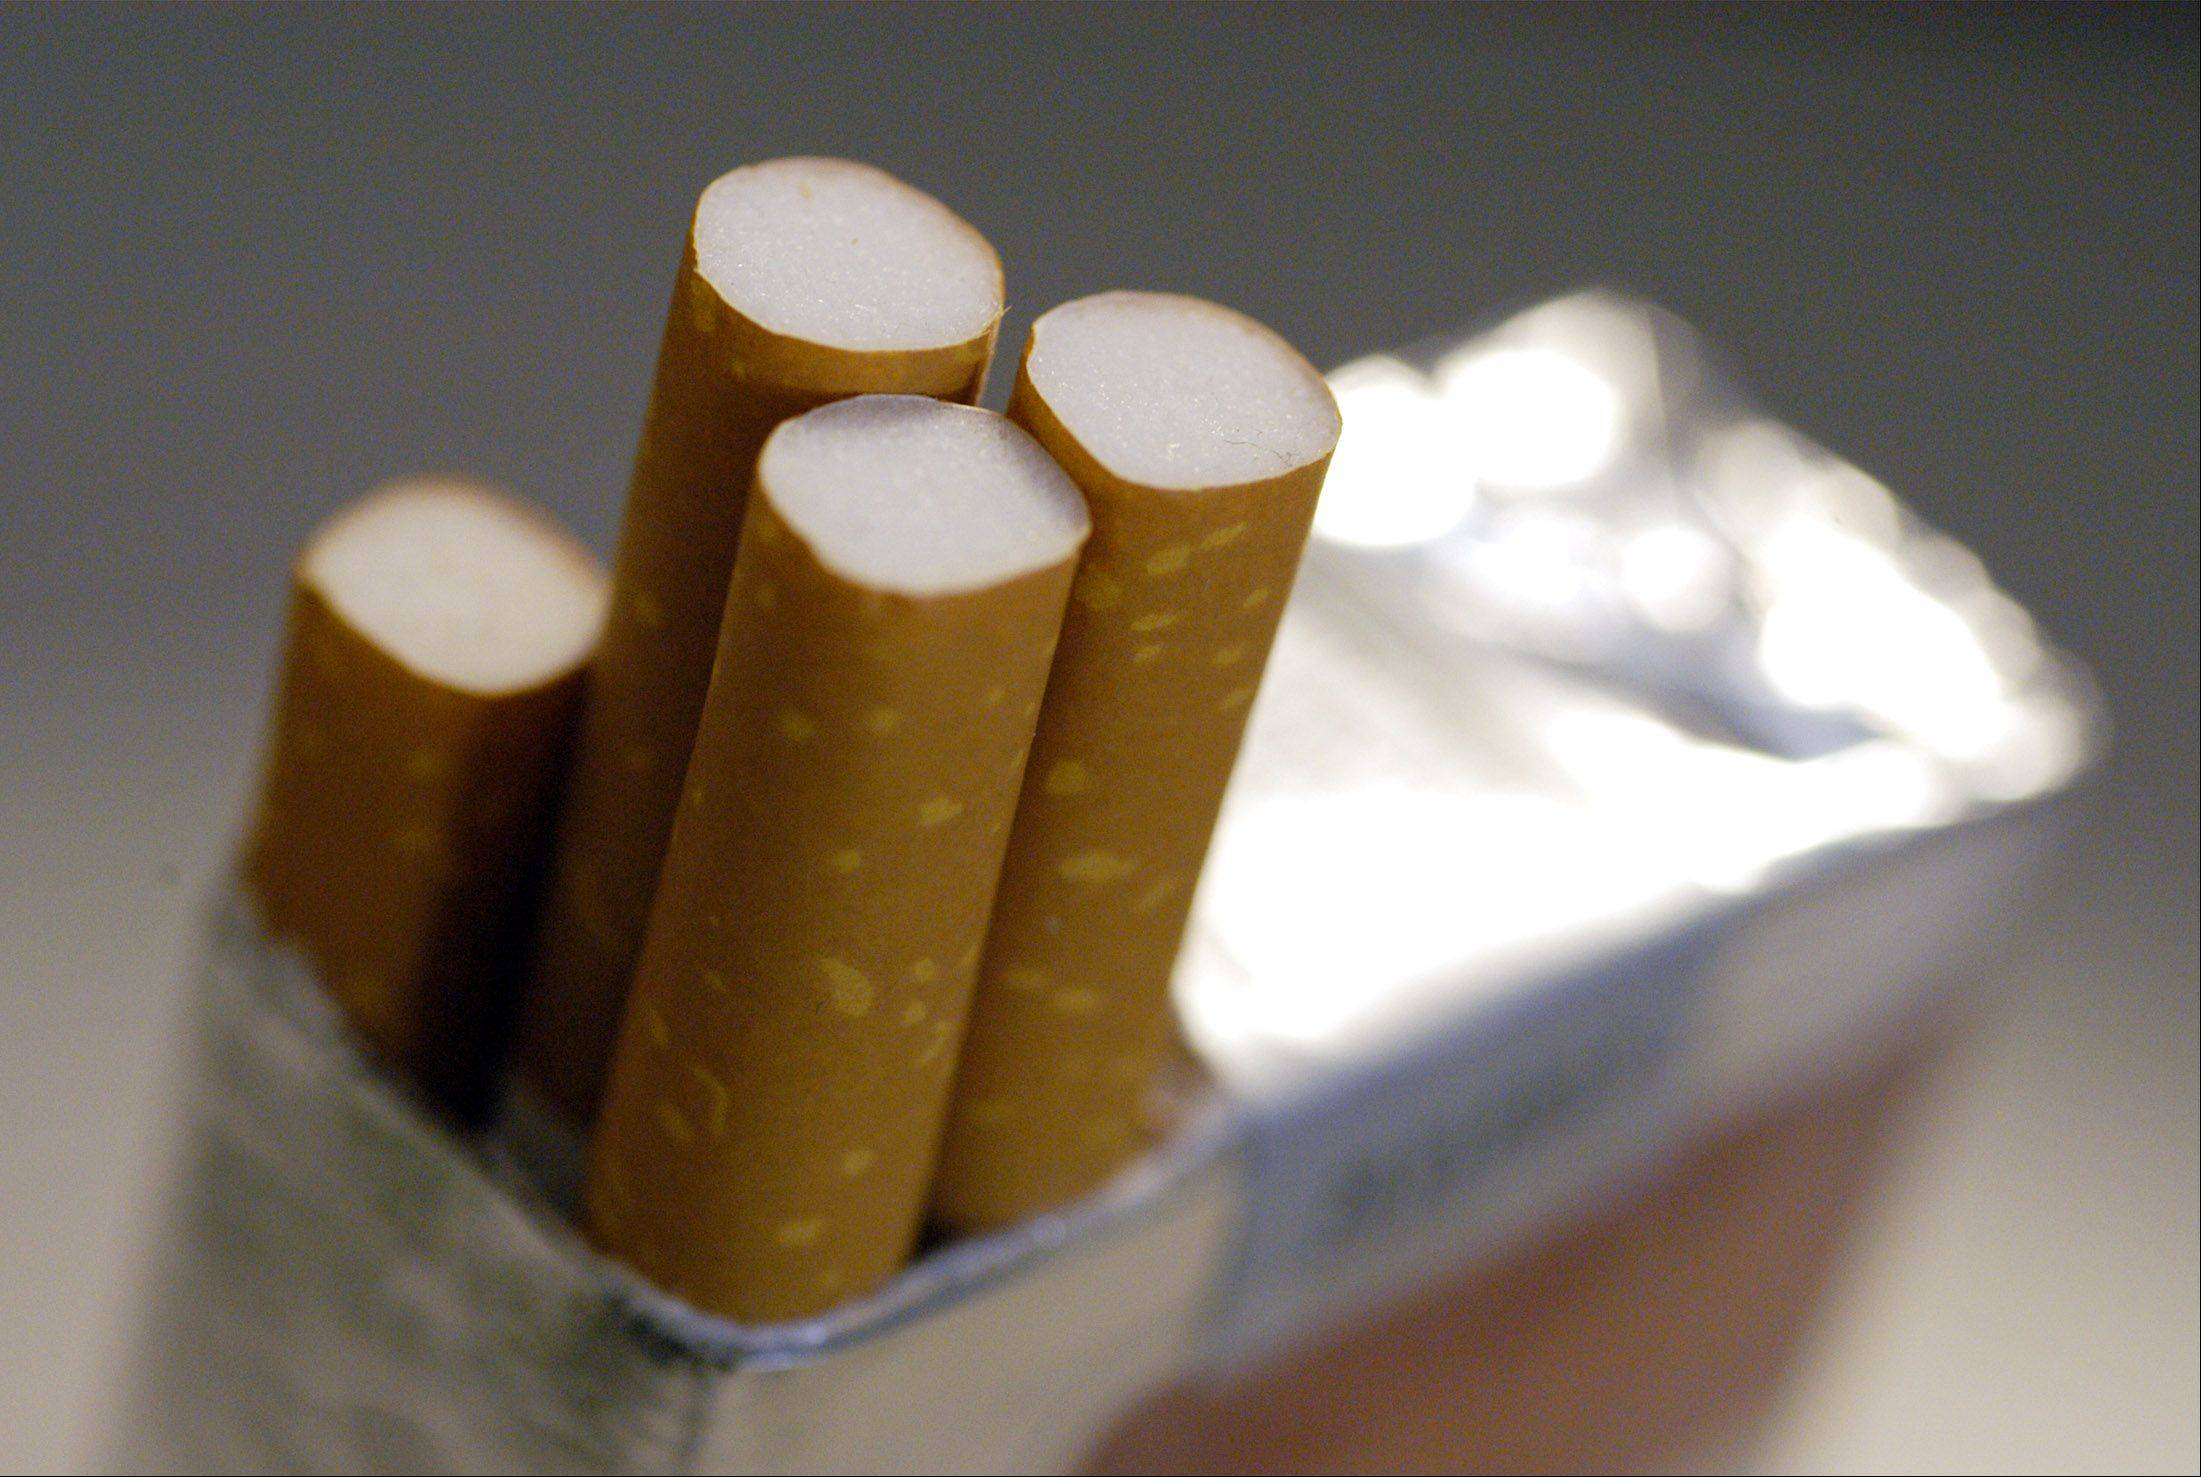 The tax on a pack of cigarettes will jump from 98 cents to $1.98 in Illinois today, a move lawmakers and health advocates say will generate desperately needed revenue for the state while cutting smoking rates.